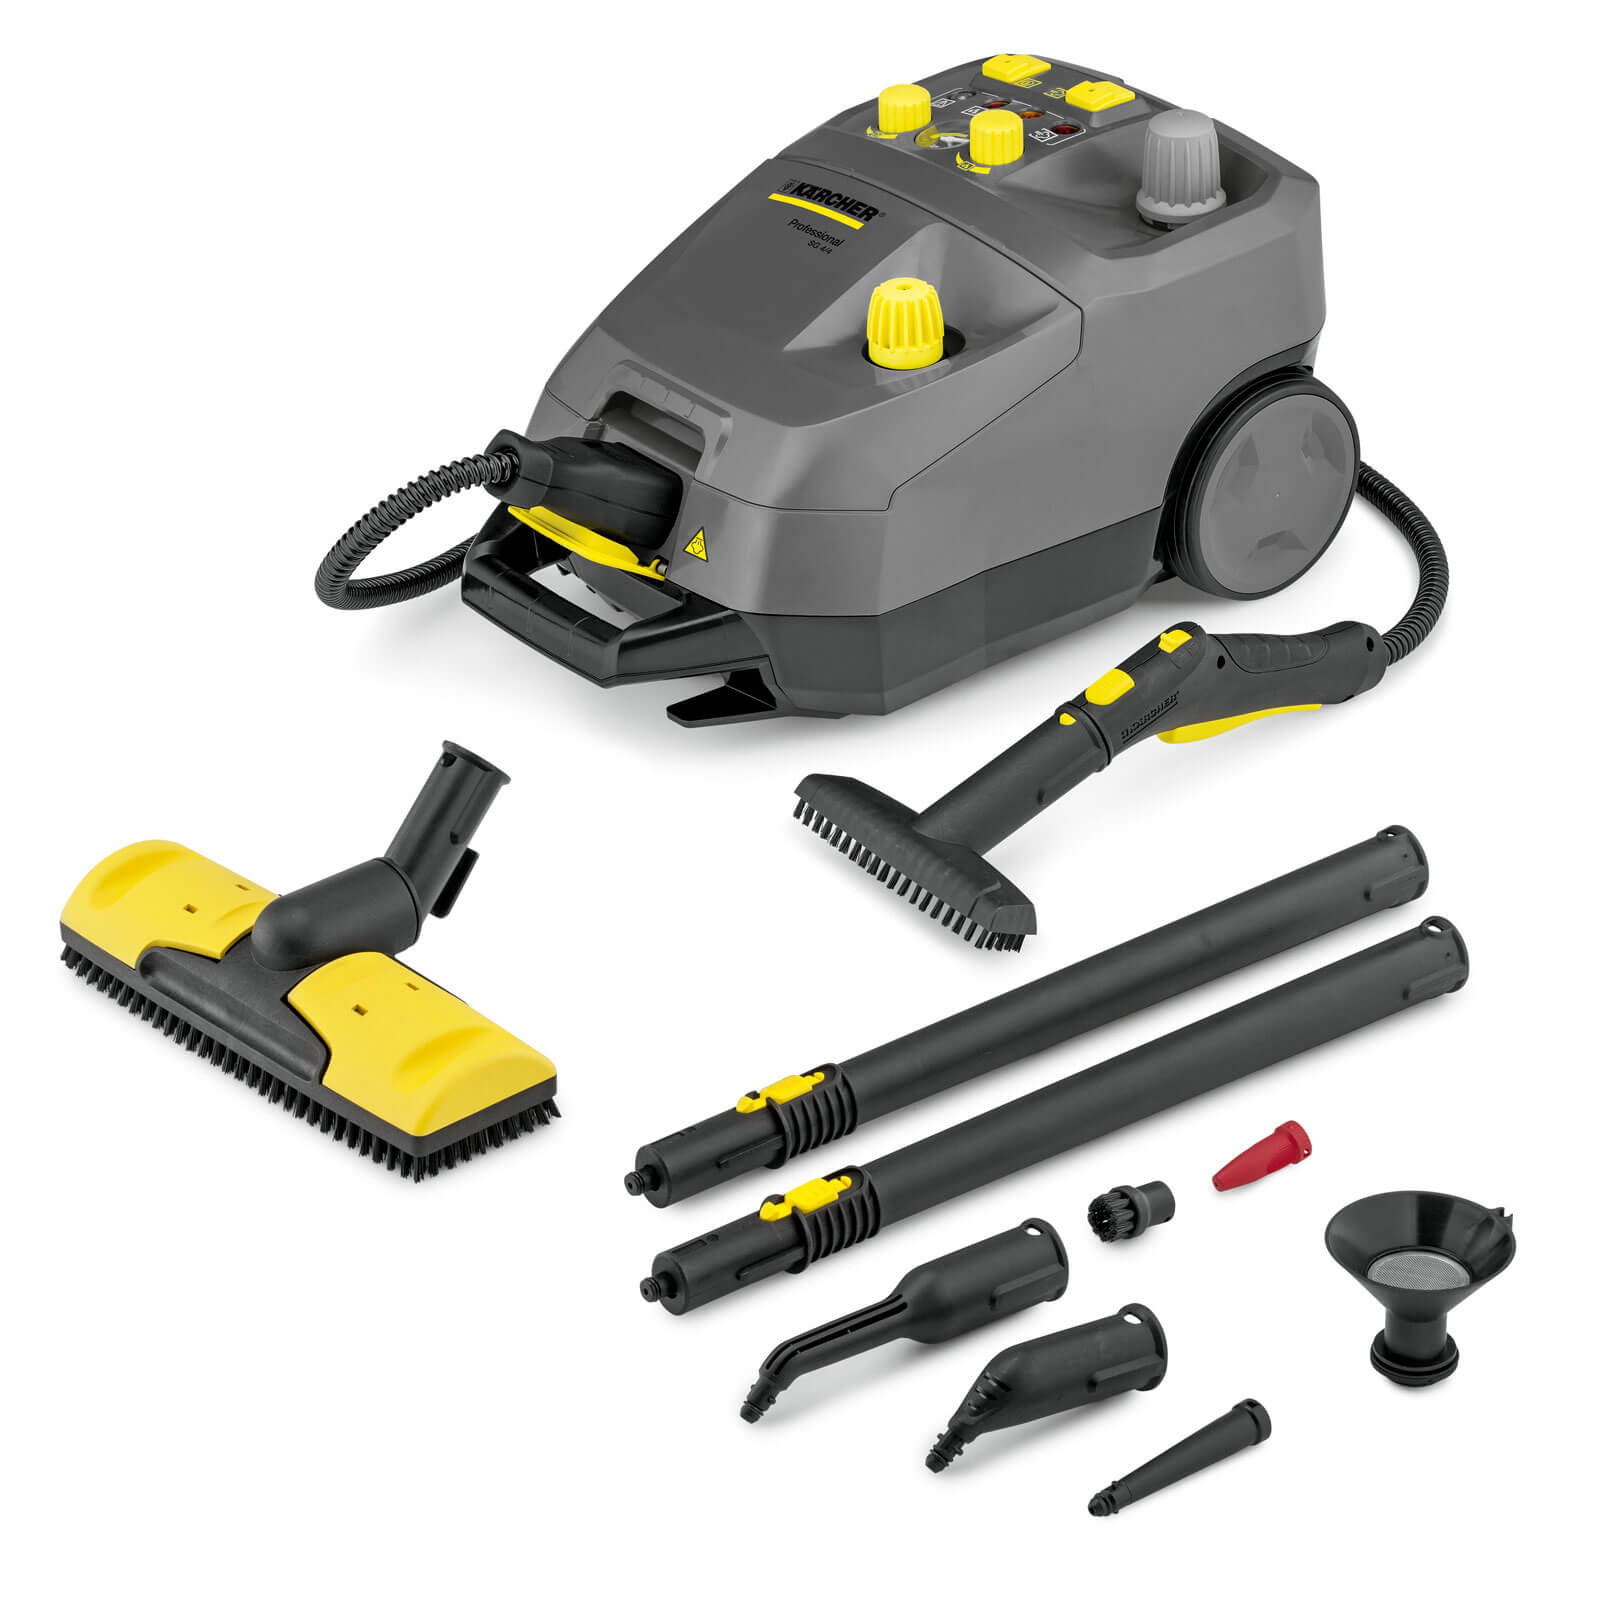 Karcher SG 4/4 Professional Steam Cleaner 240v